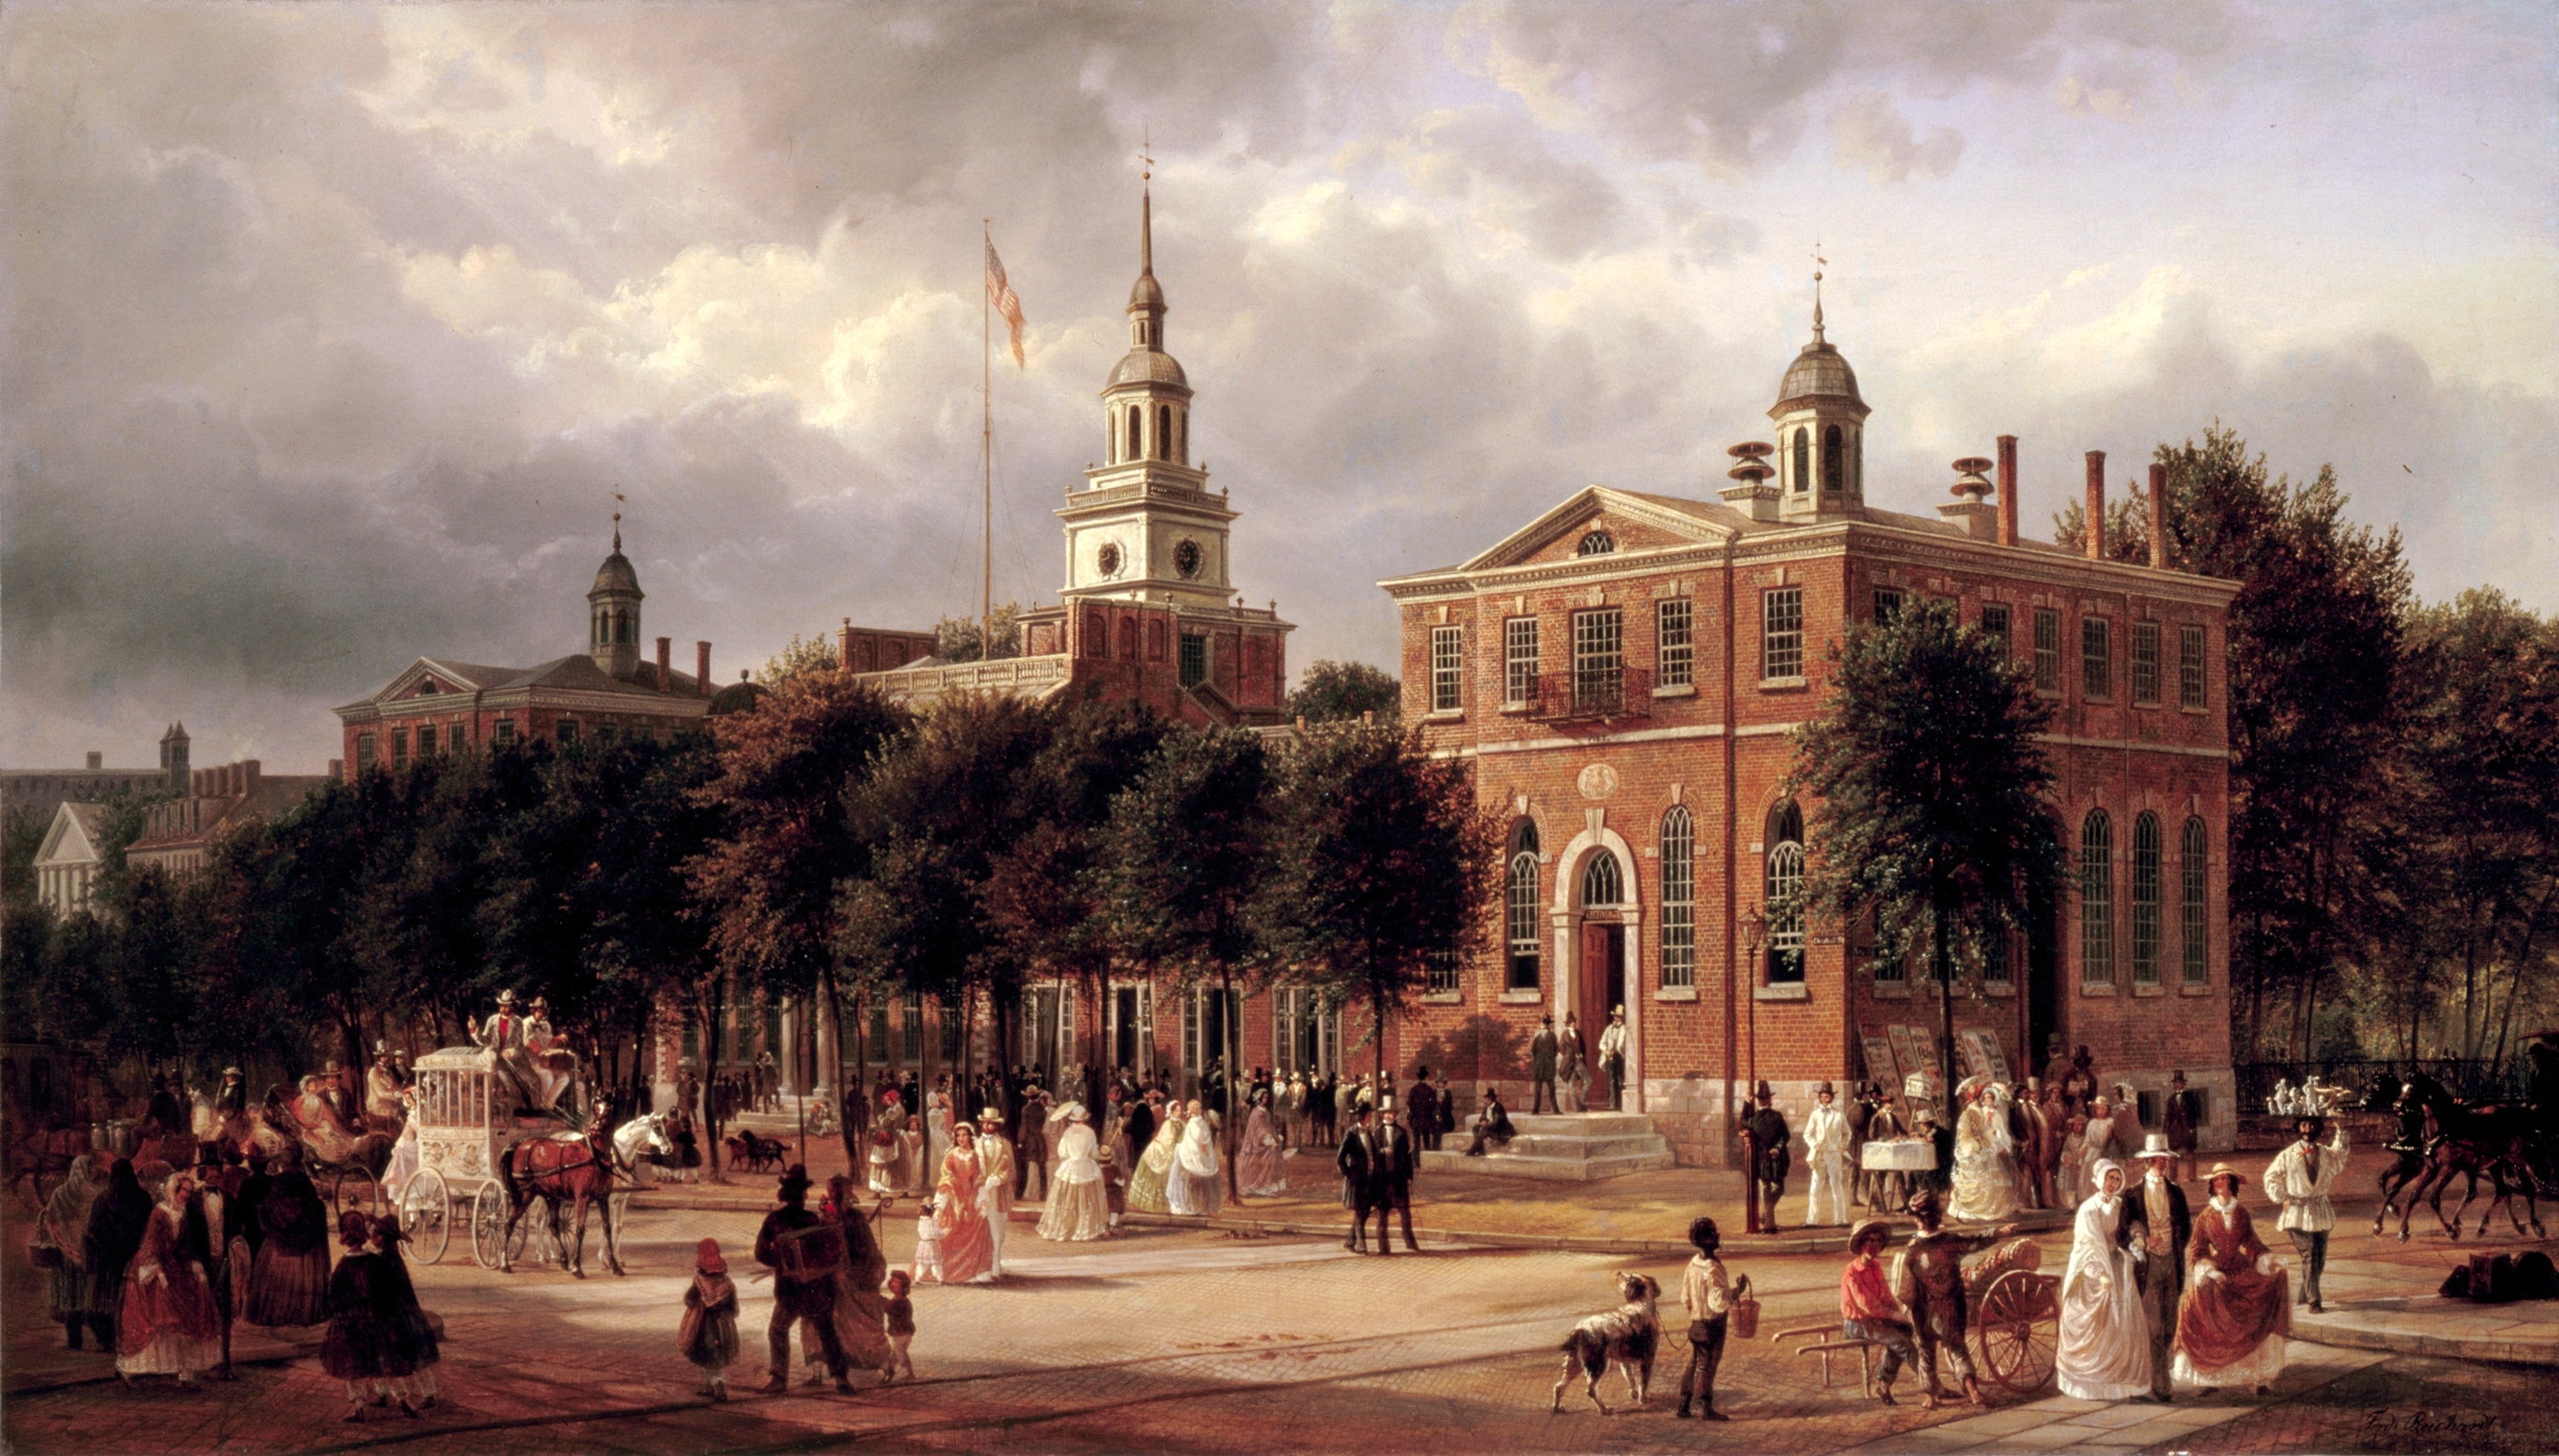 Ferdinand Richardt: Independence Hall in Philadelphia